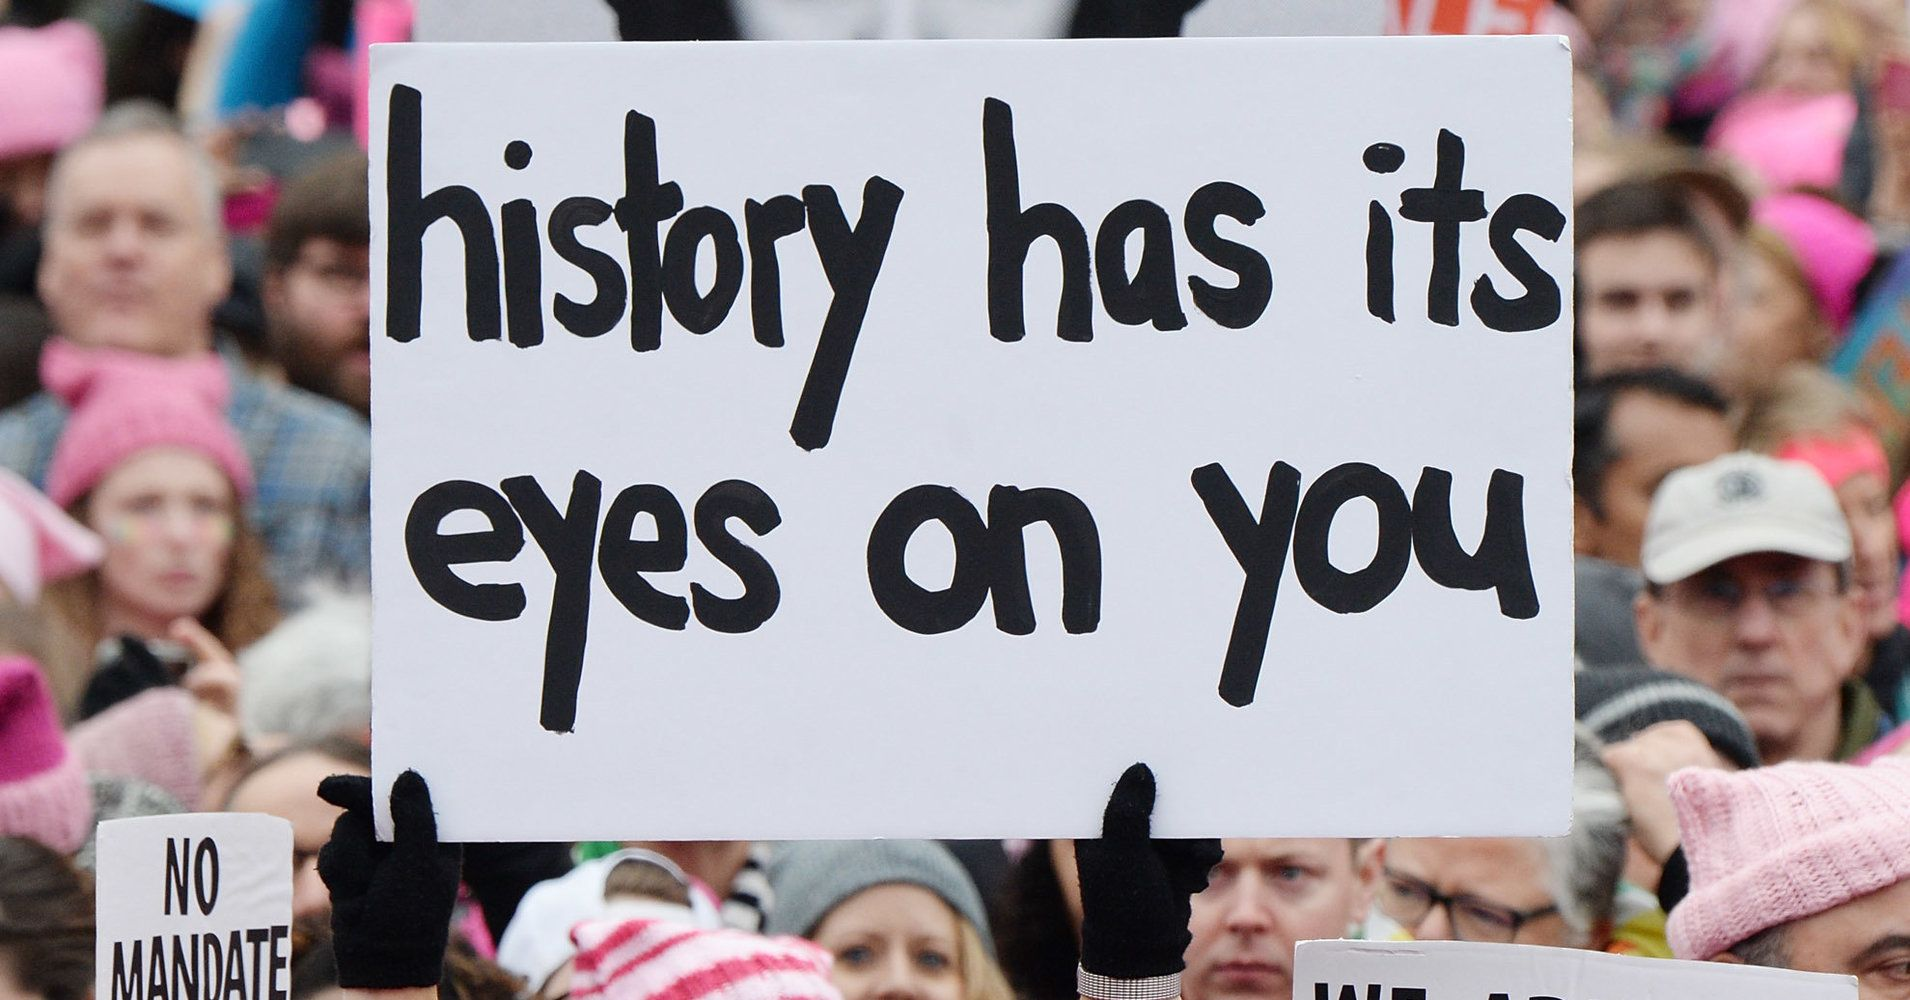 Protesters Are Using Hamilton Lyrics To Defend Rights Across The Country Protest Signs Power To The People Hamilton